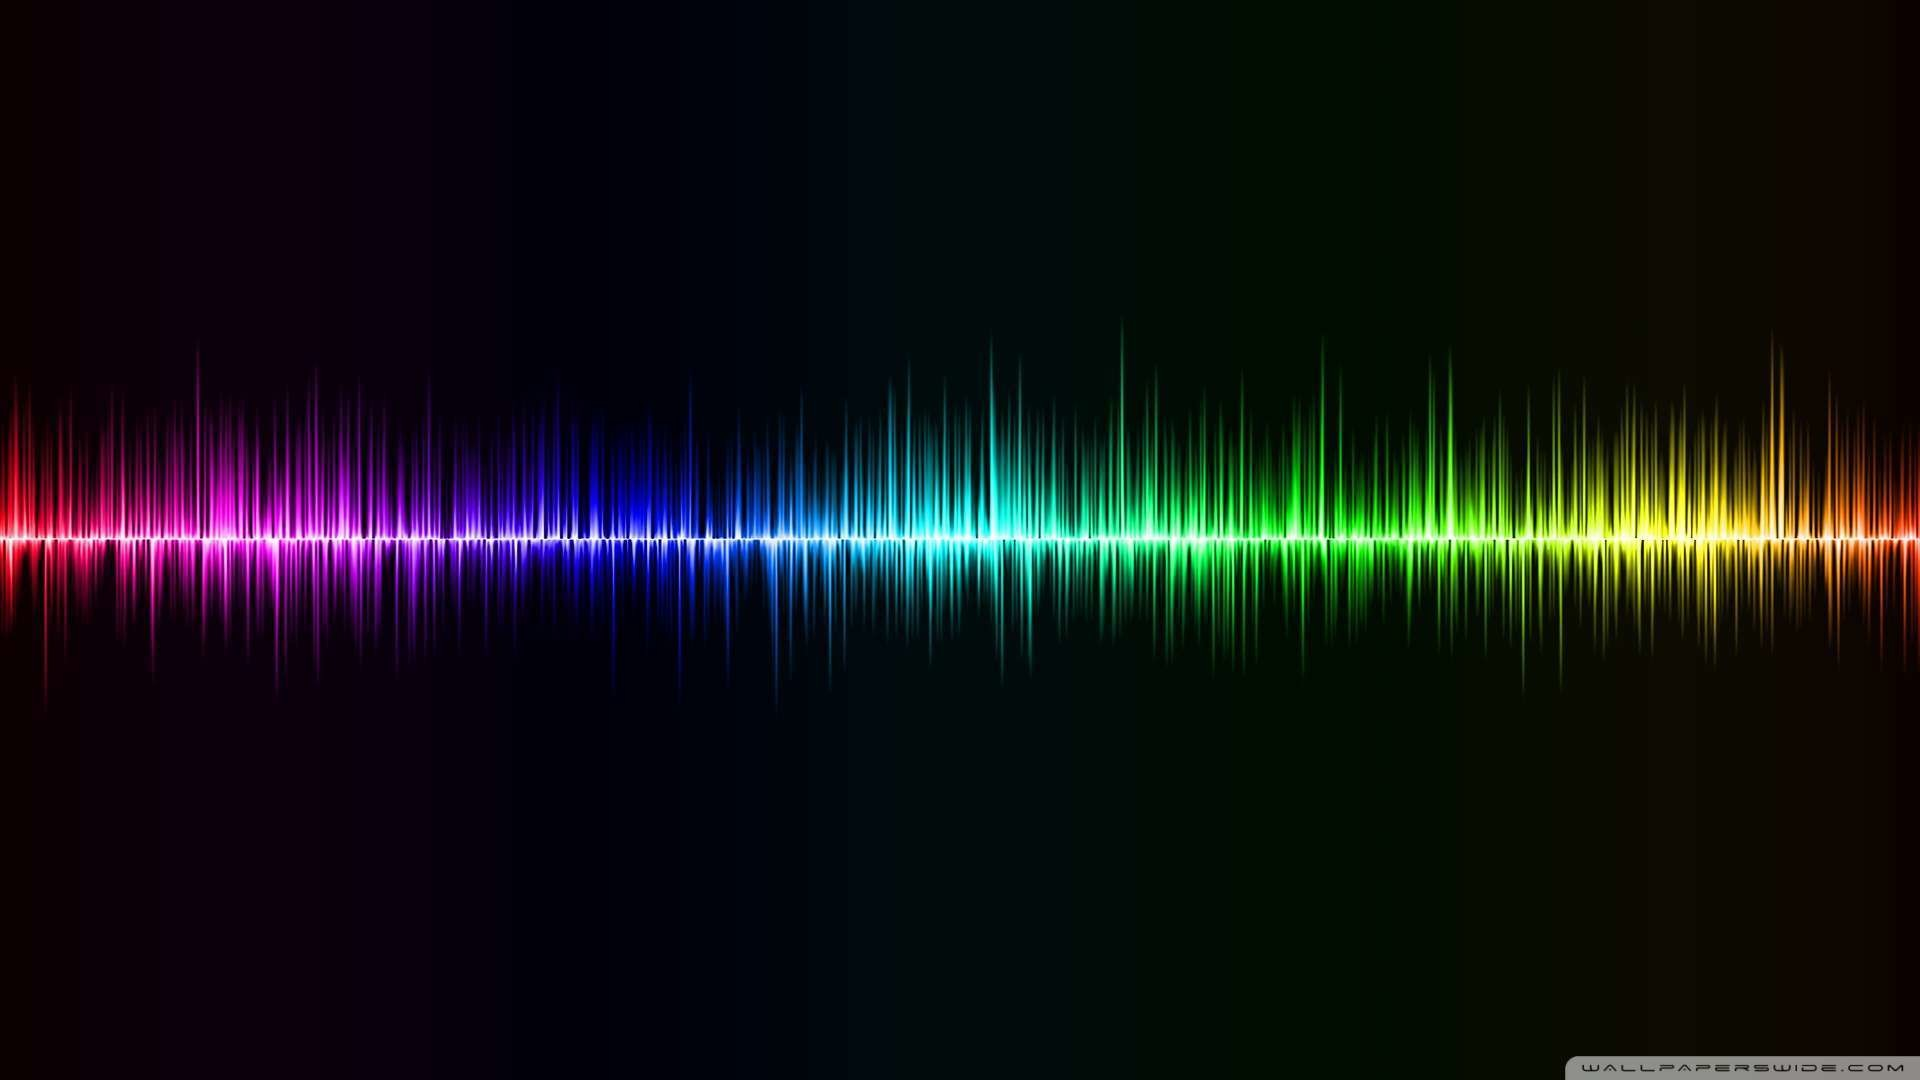 Music sound waves live wallpaper 74 images - Wallpaper 1920x1080 music ...